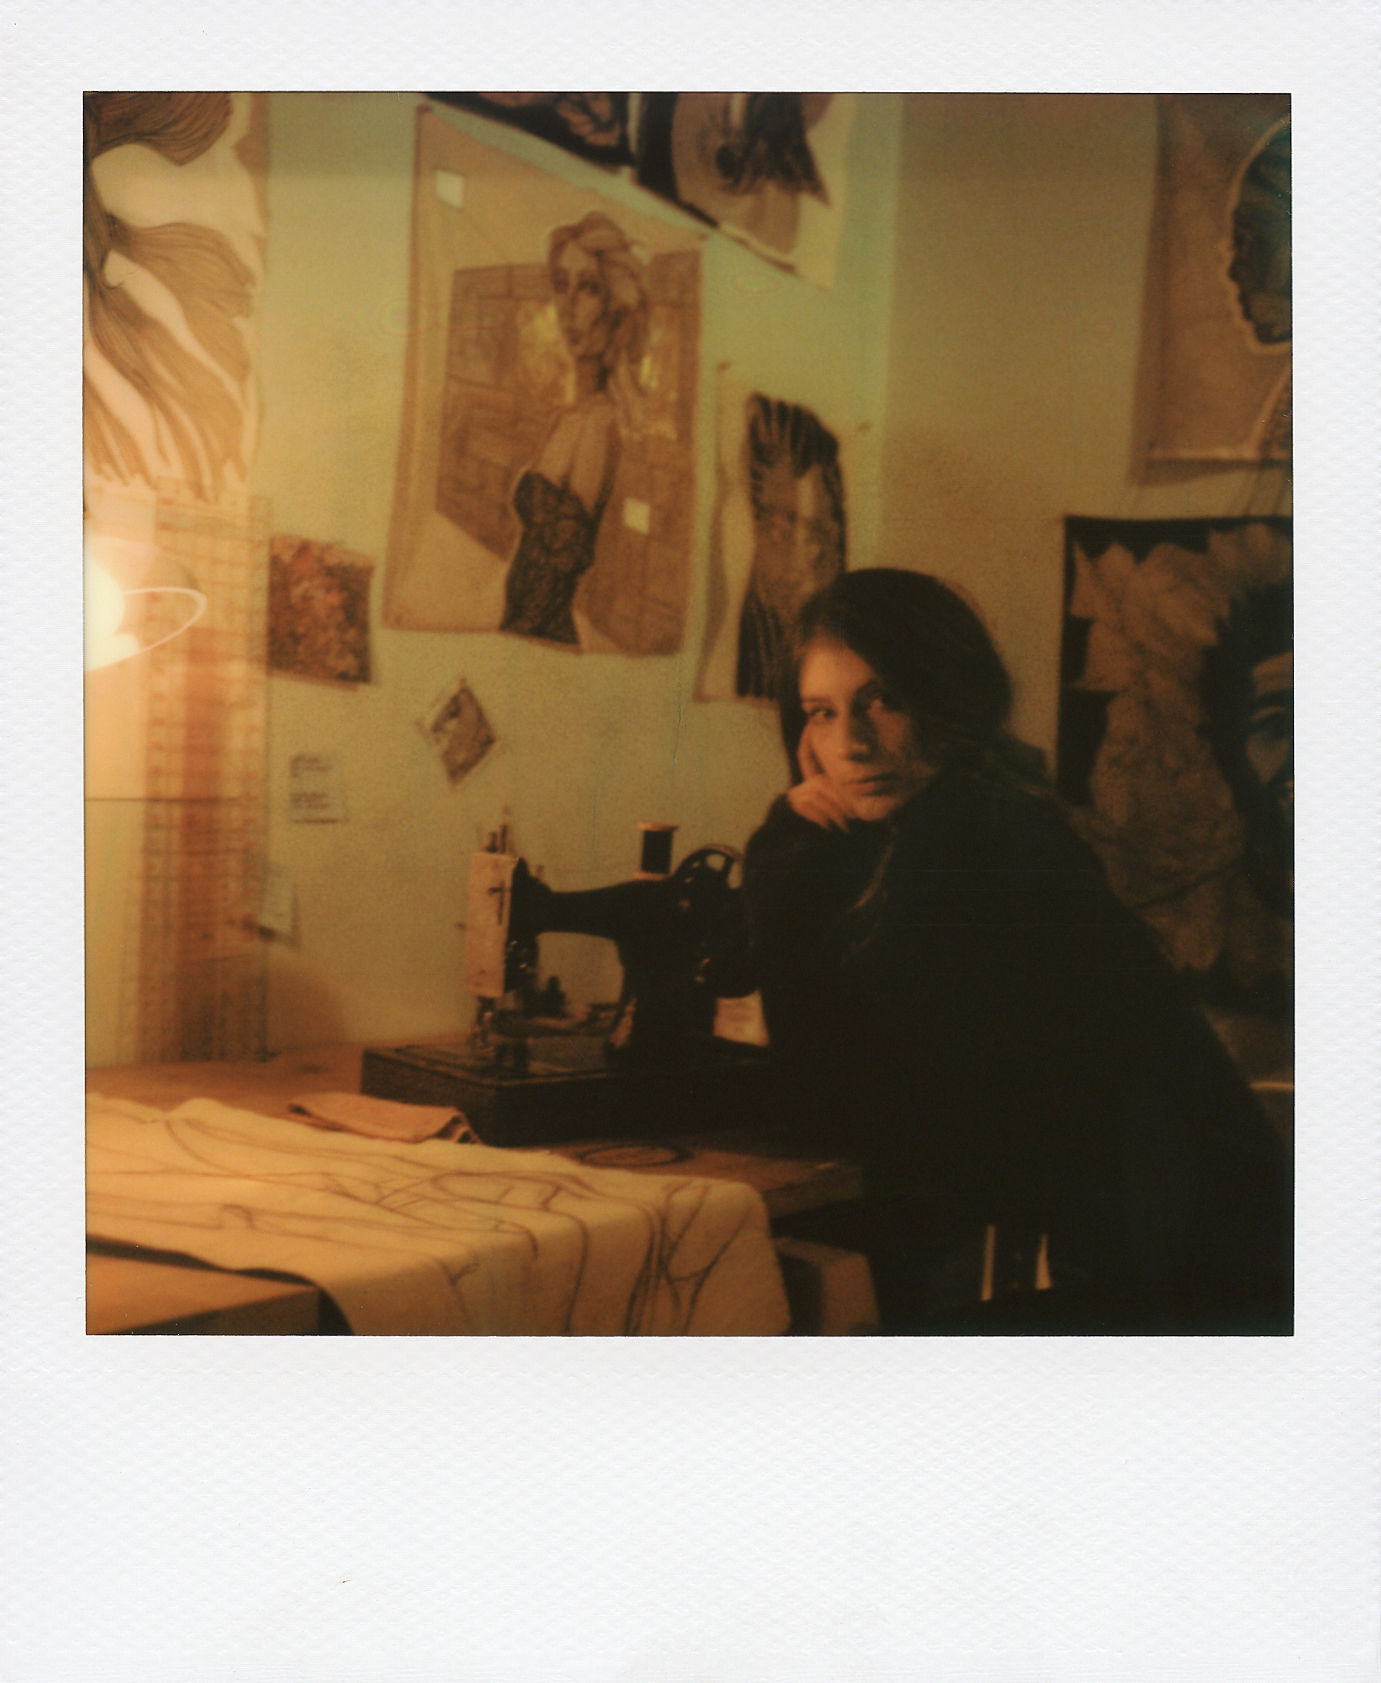 crismonts_laurarenee_polaroid_3